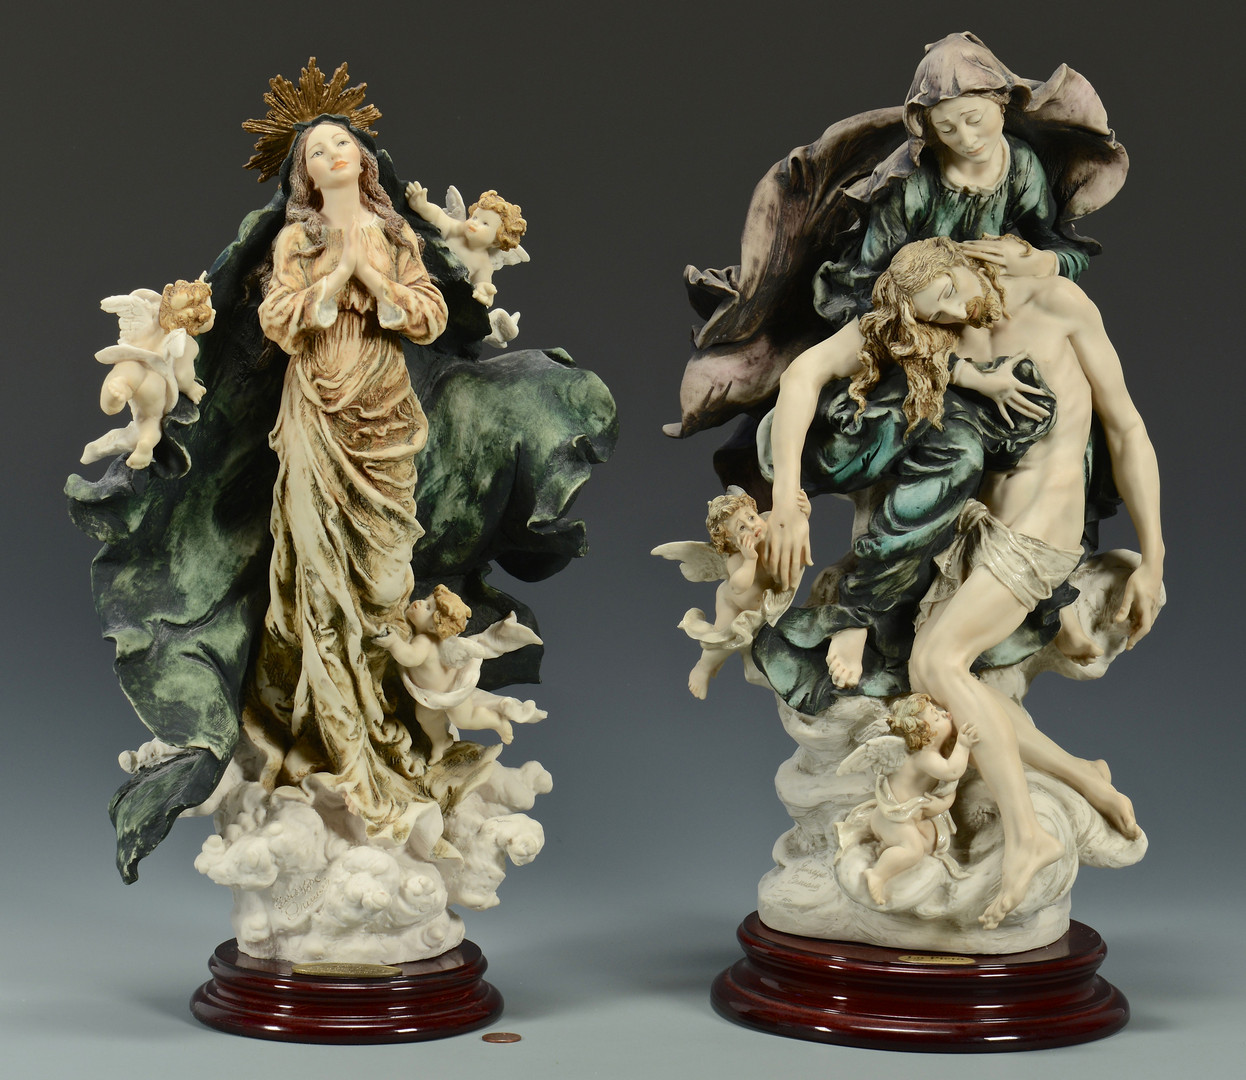 Lot 764: 2 Armani Limited Edition Religious Sculptures